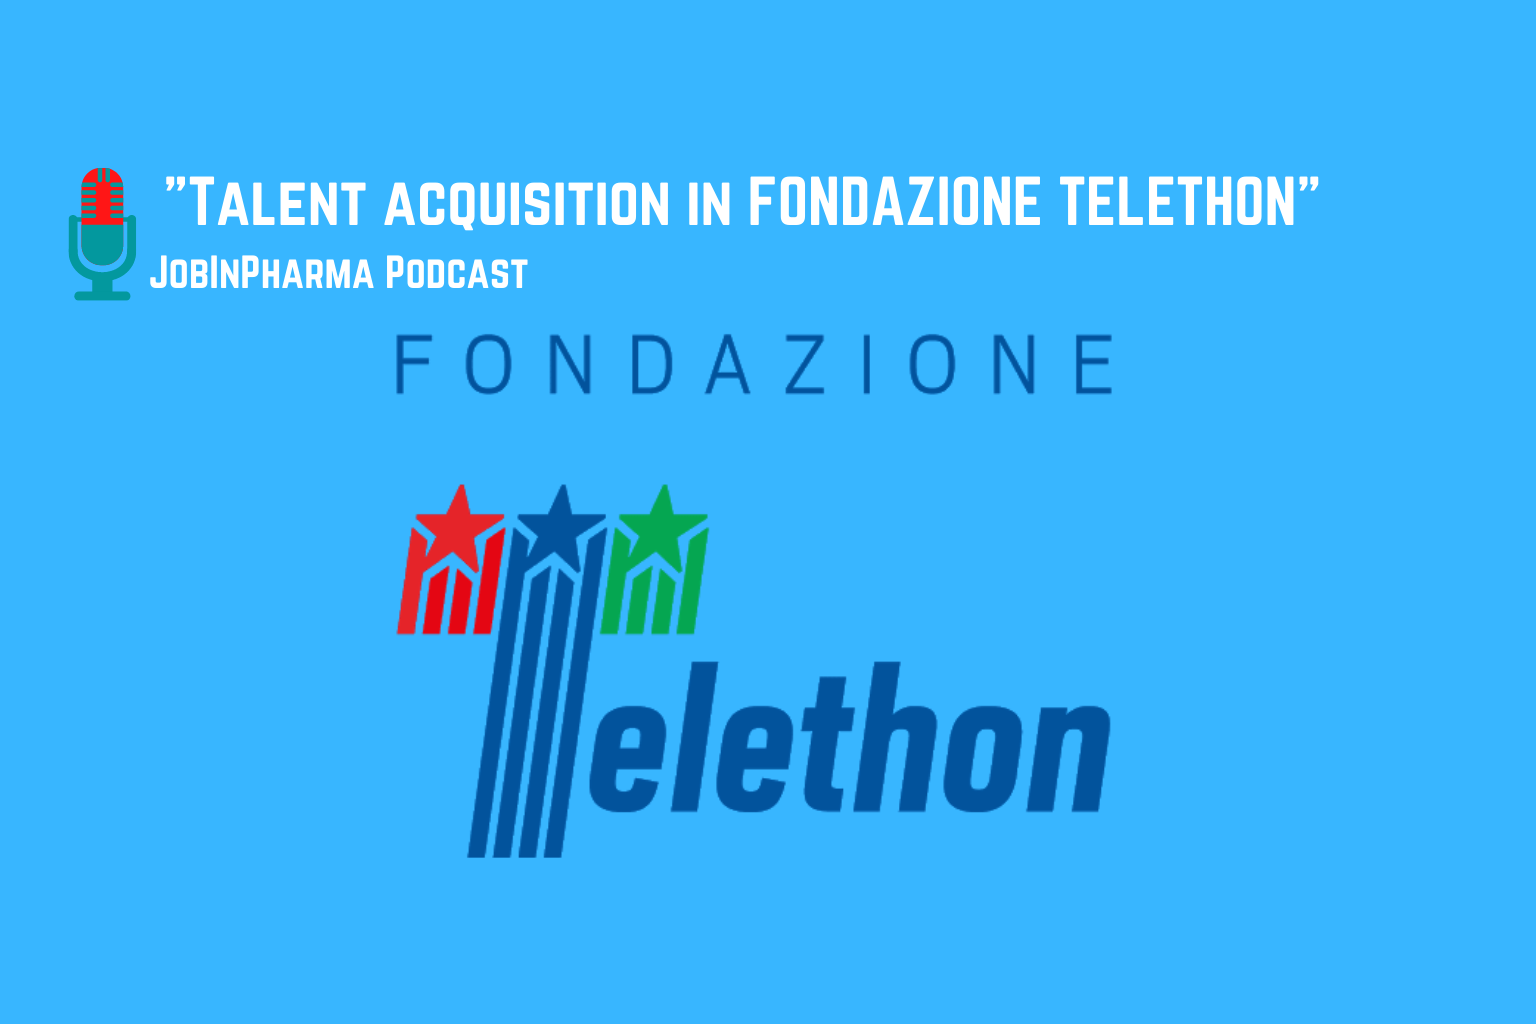 fondazione telethon per jobinpharma talent acquisition